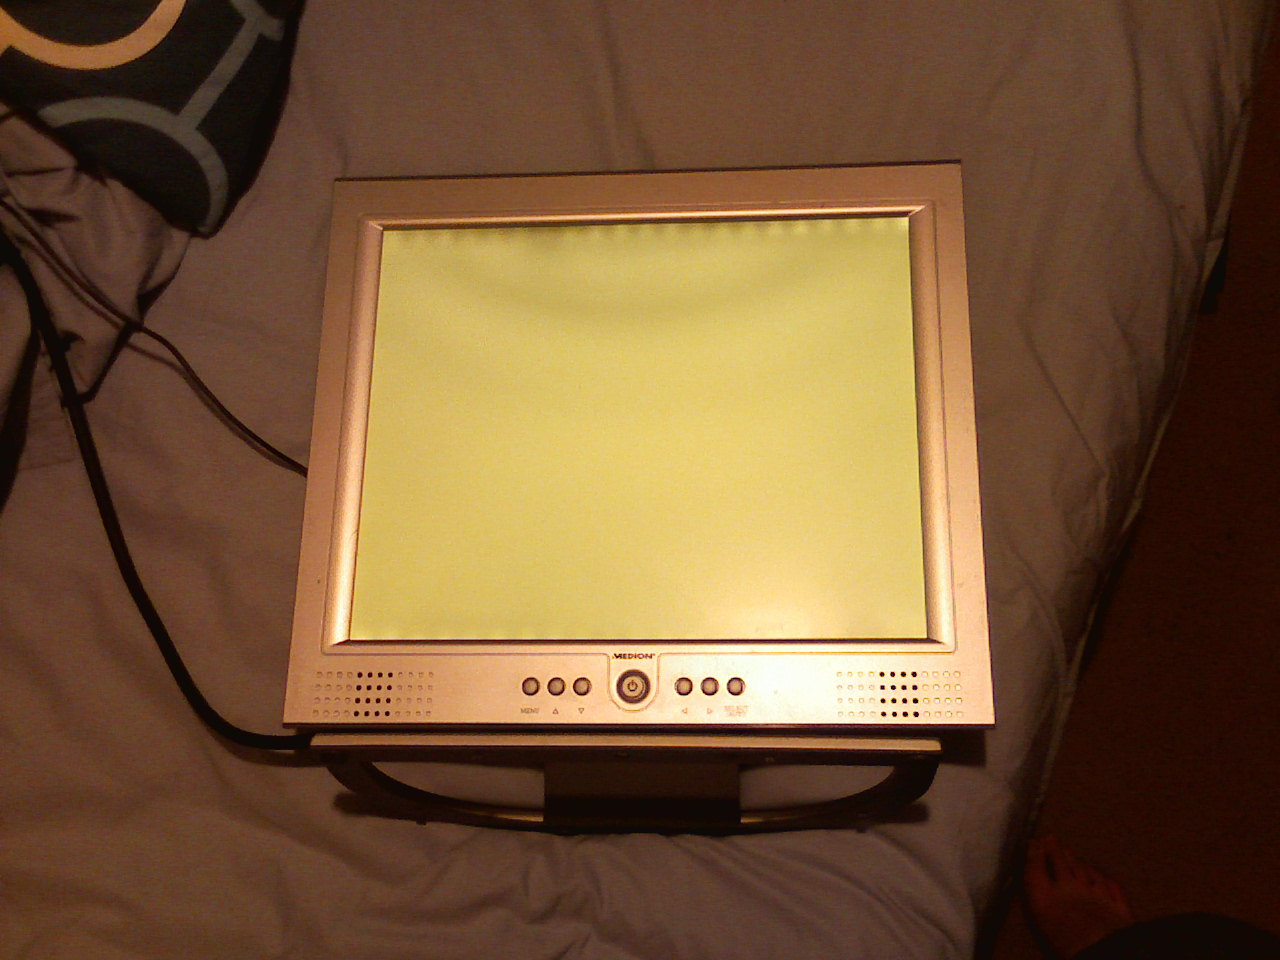 LED Backlight for An LCD Monitor or Television